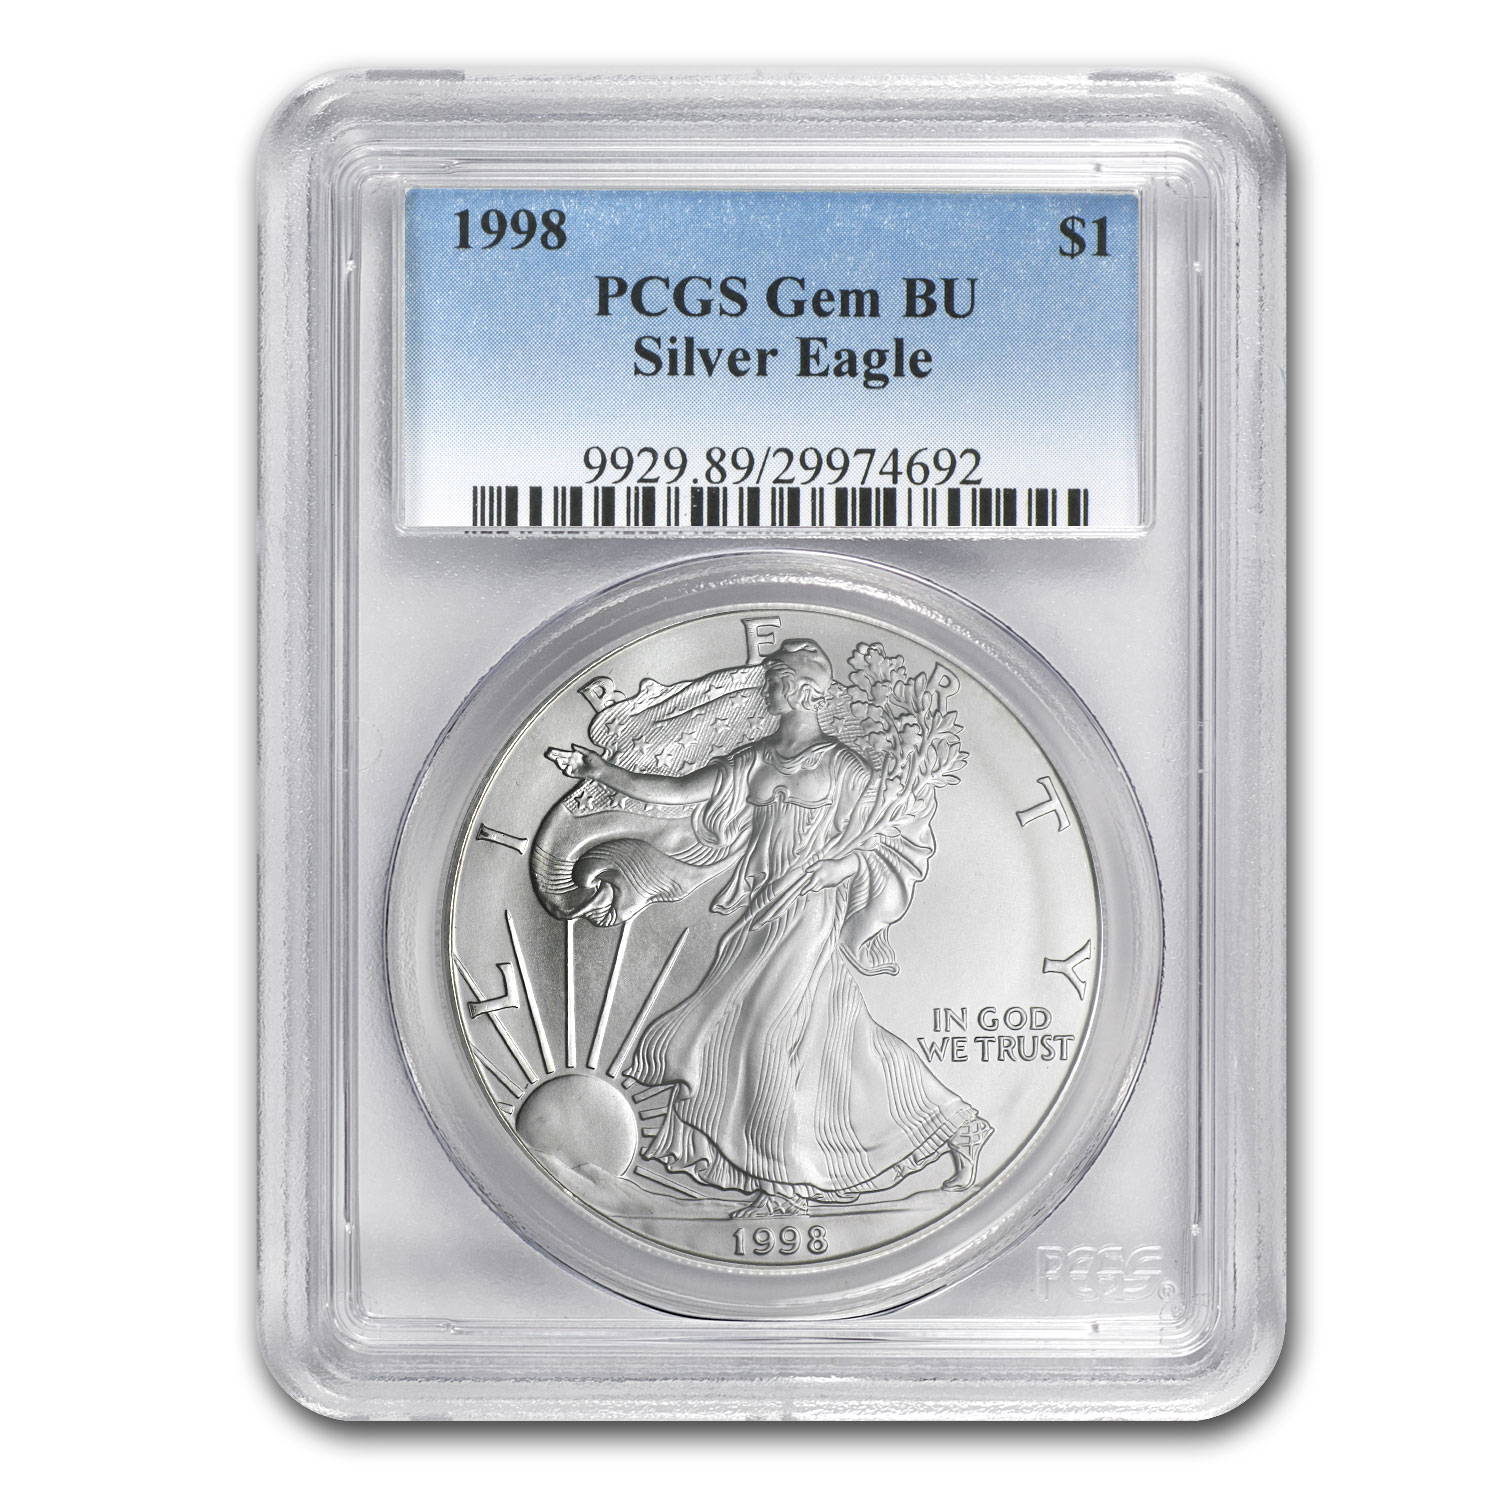 1986-2014 29-Coin Silver Eagle Set Gem BU (PCGS Box)